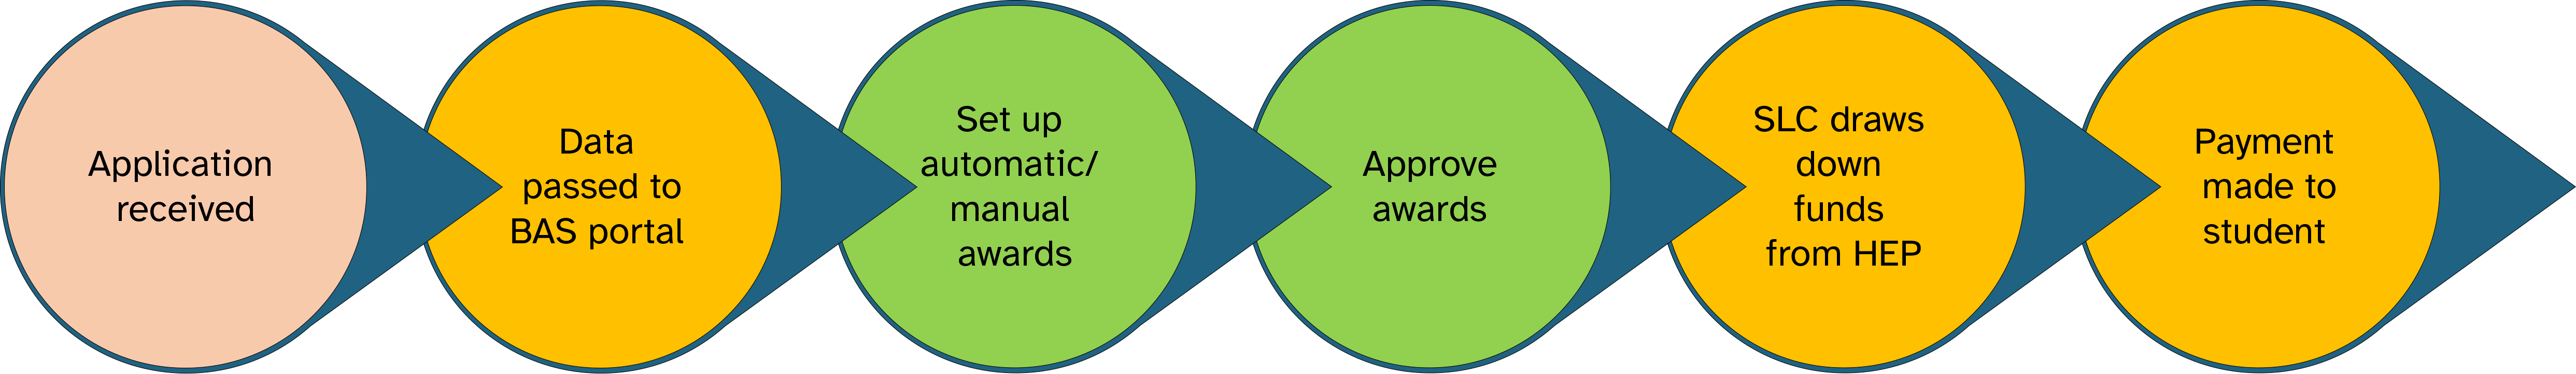 A process flow chart for the Bursaries Administration Service. Step 1, an application is received. Step 2, Application data is passed to the BAS portal. Step 3, set up is completed for automatic or manual awards. Step 4, Awards are approved. Step 5, Student Loans Company will draw down funds from the Higher Education Provider. Step 6, Payment of the bursary is made to the student.